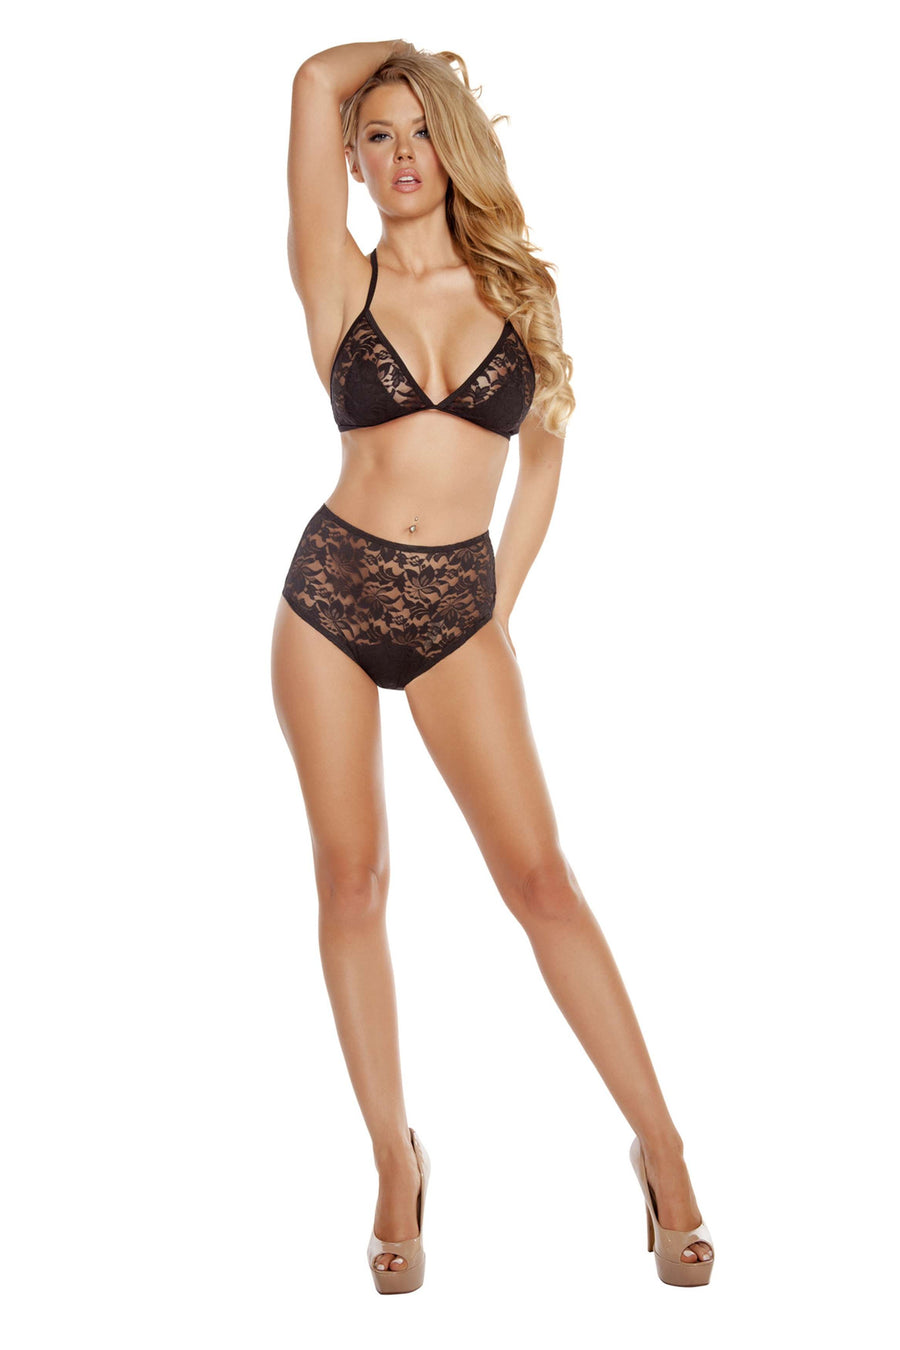 High-Waisted Lace Shorts & Halter Top - Black